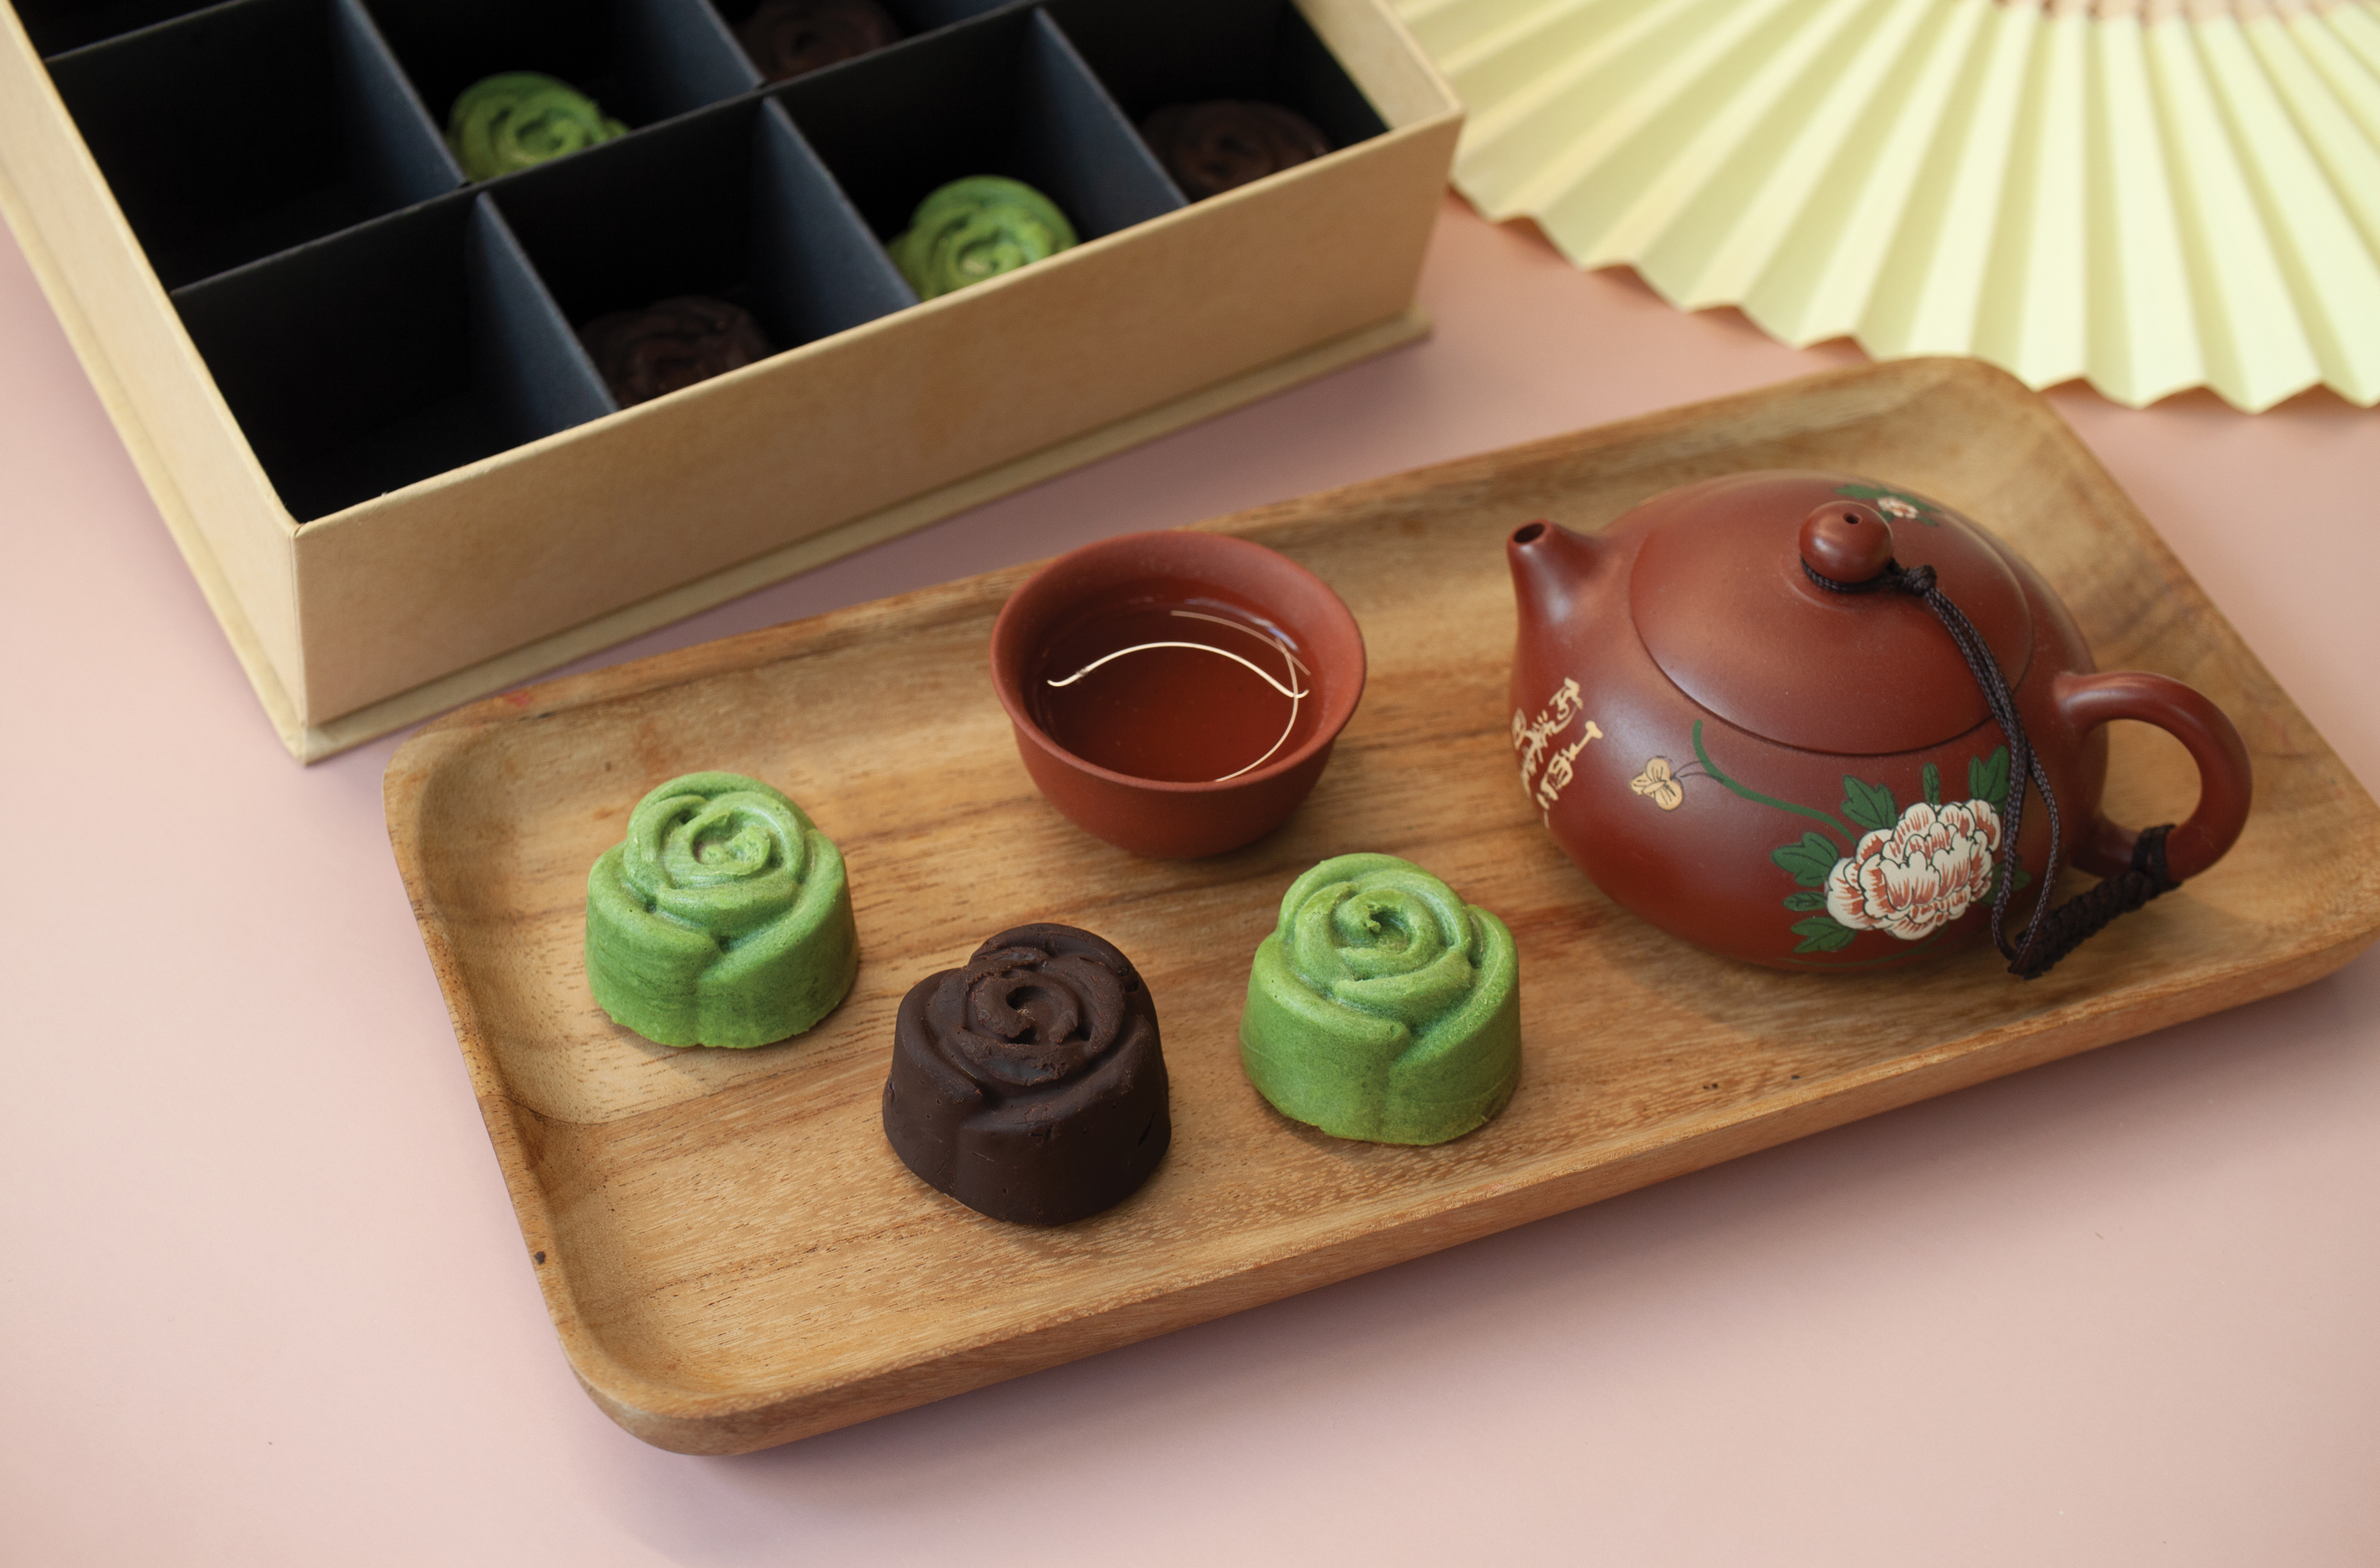 Found launches Hong Kong's first-ever CBD-infused vegan mooncakes